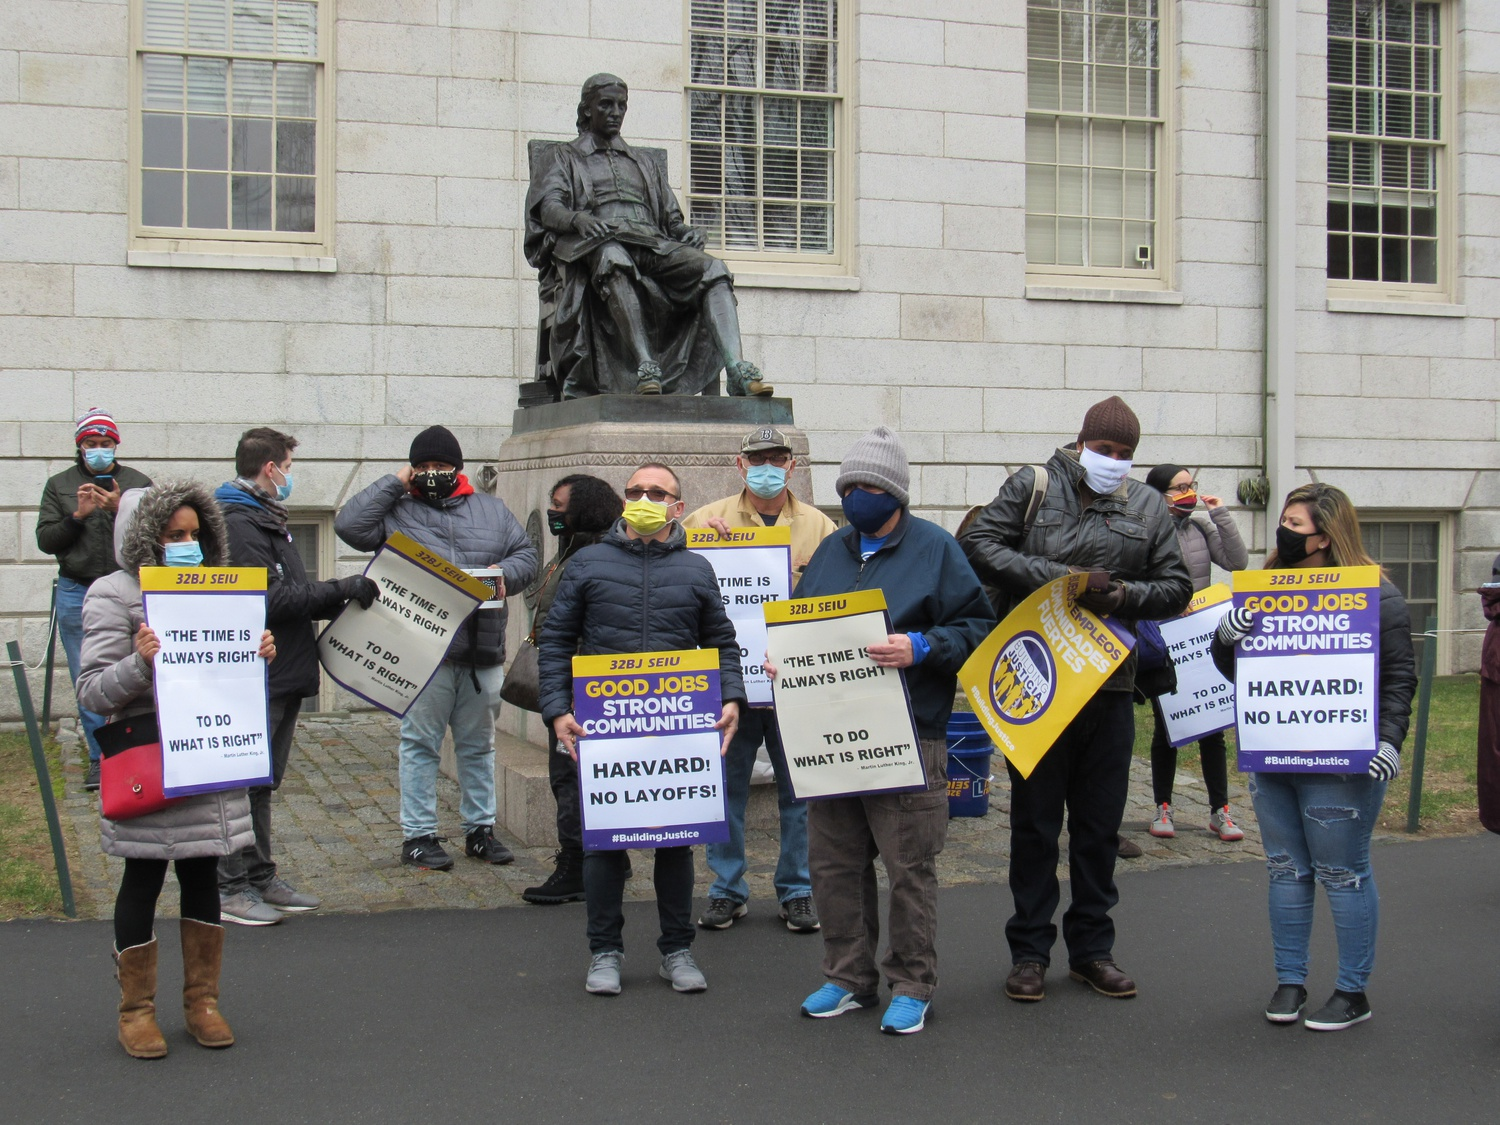 At a rally in January, 32BJ Service Employees International Union and Unite Here Local 26 called on Harvard to extend paid leave contracted employees idled by the pandemic into the spring.